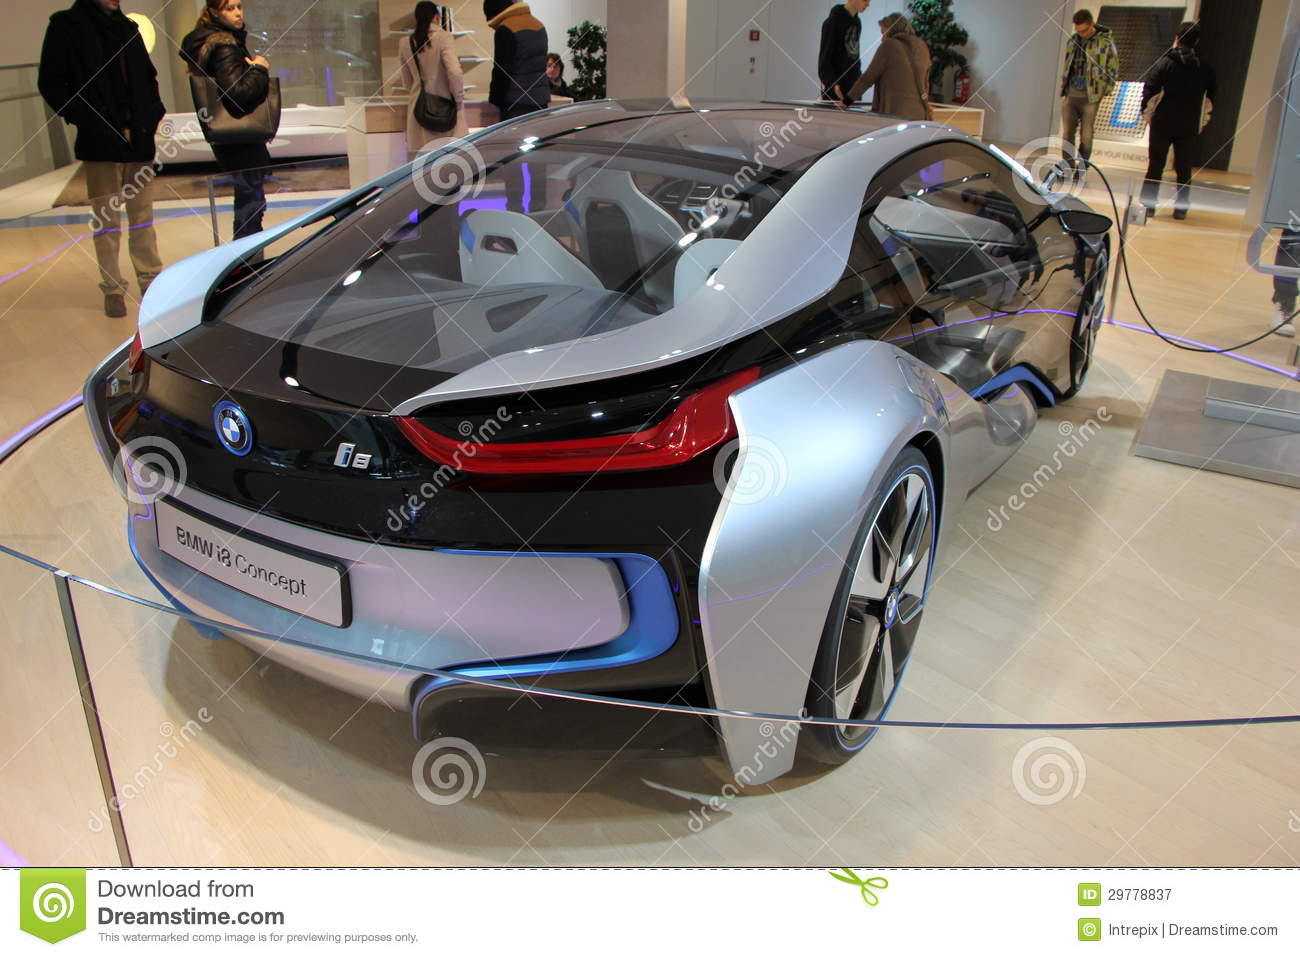 Bmw I8 Electric Concept Car Editorial Photography Image Of